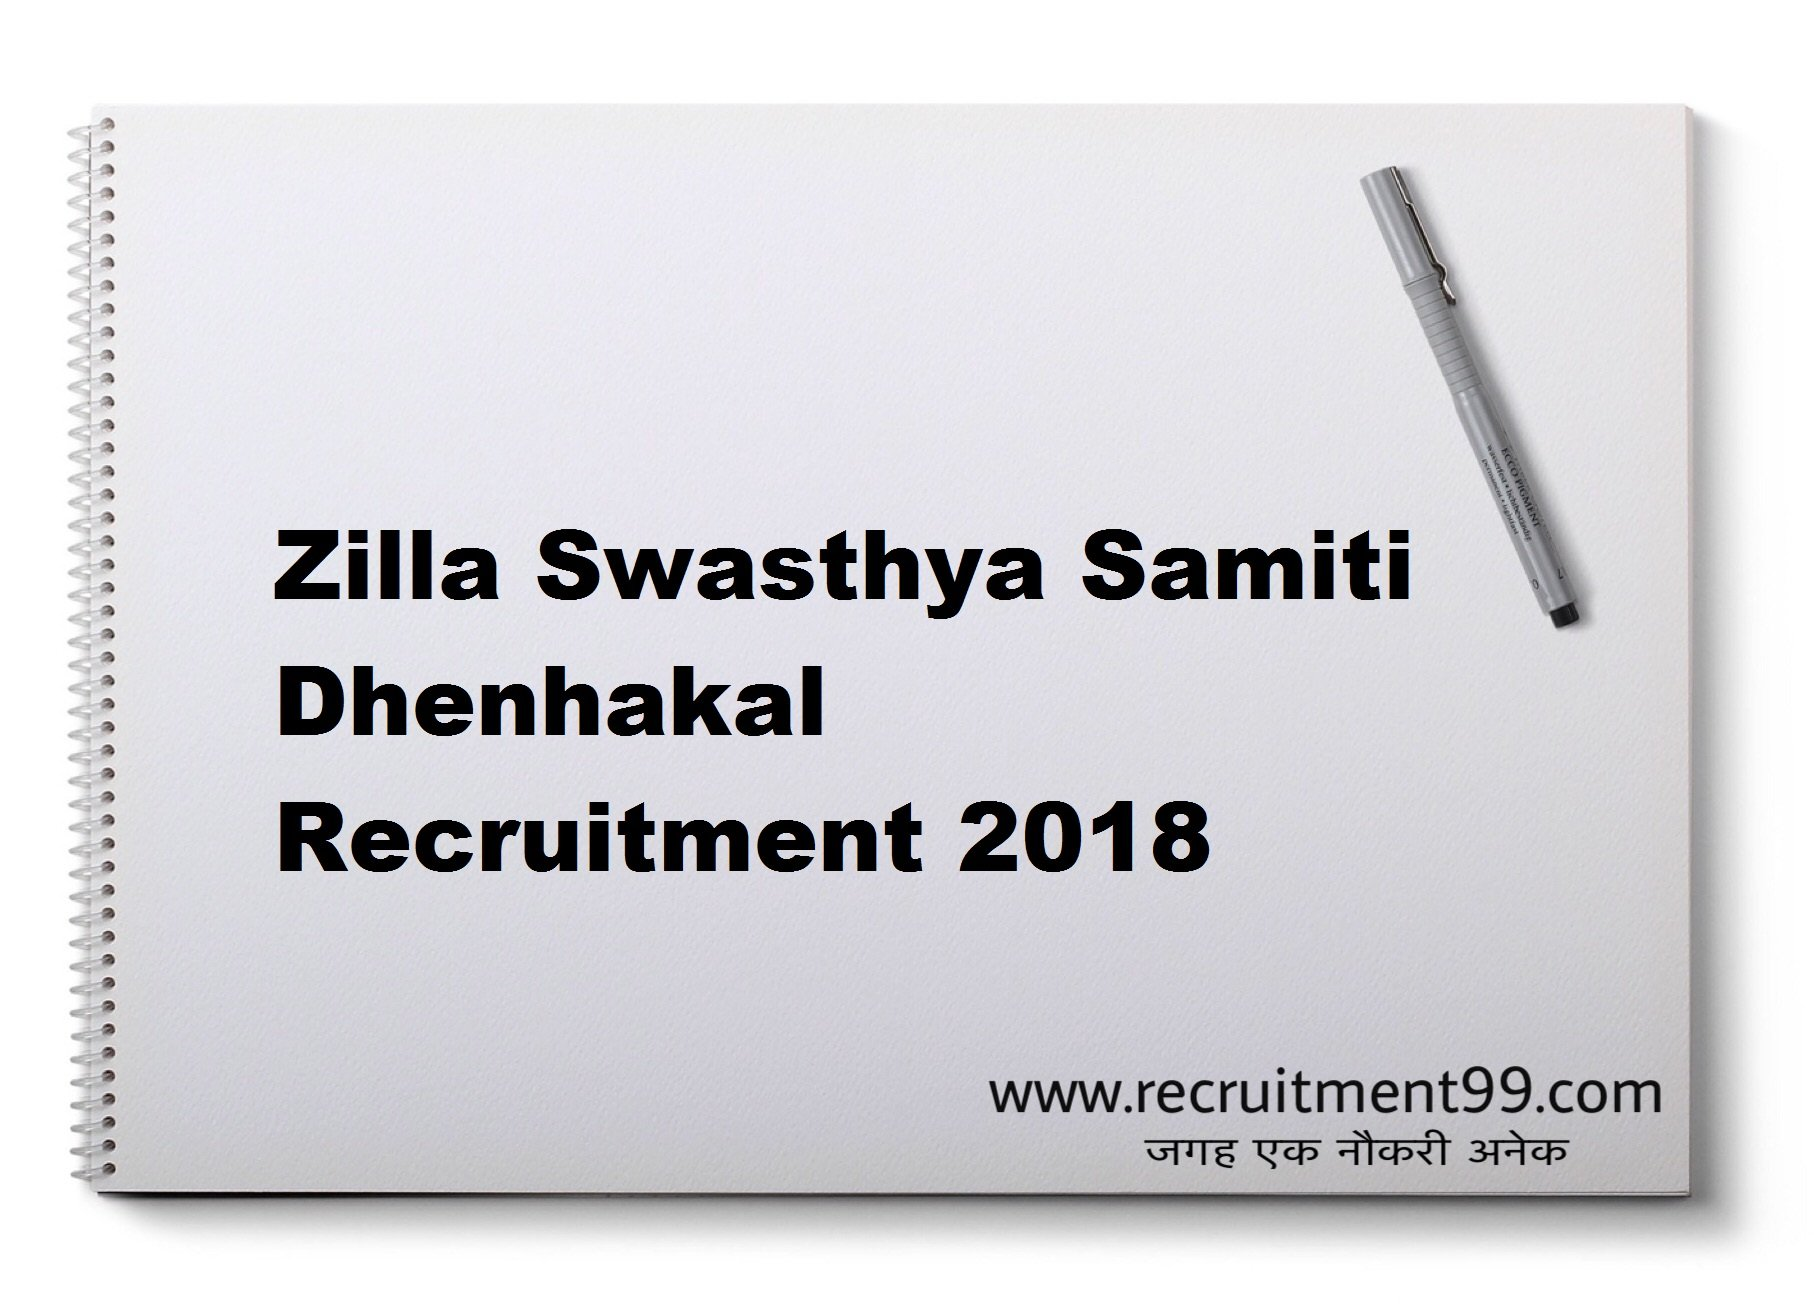 Zilla Swasthya Samiti Dhenhakal Staff Nurse, Medical Officer, Pediatrician Recruitment Admit Card Result 2018